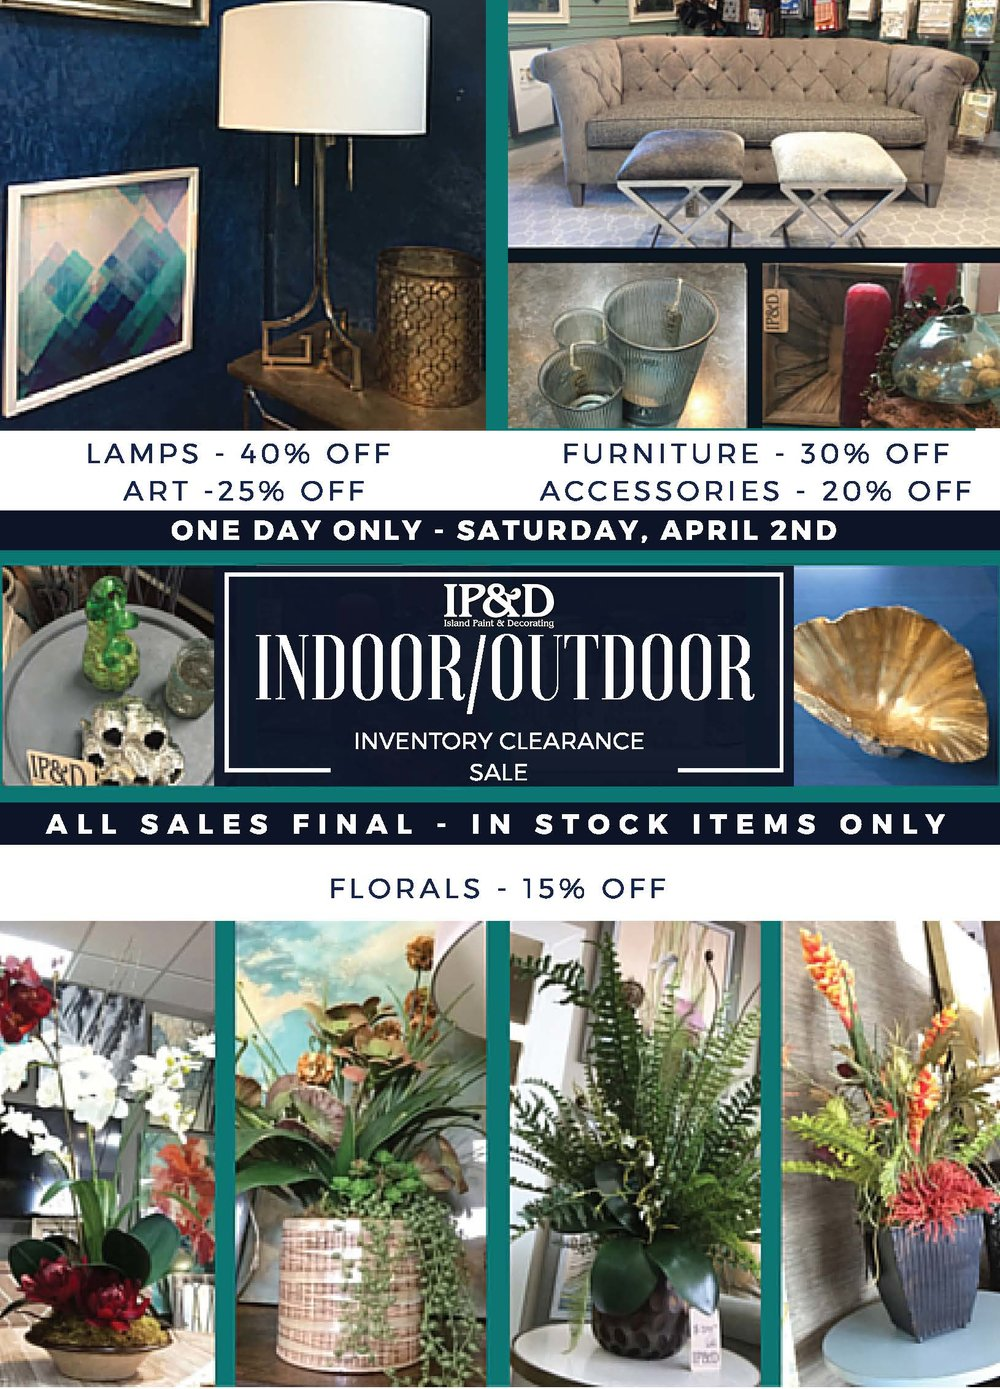 This image is of an in-store flyer we designed to accompany the other marketing materials associated with the  Indoor/Outdoor sale.